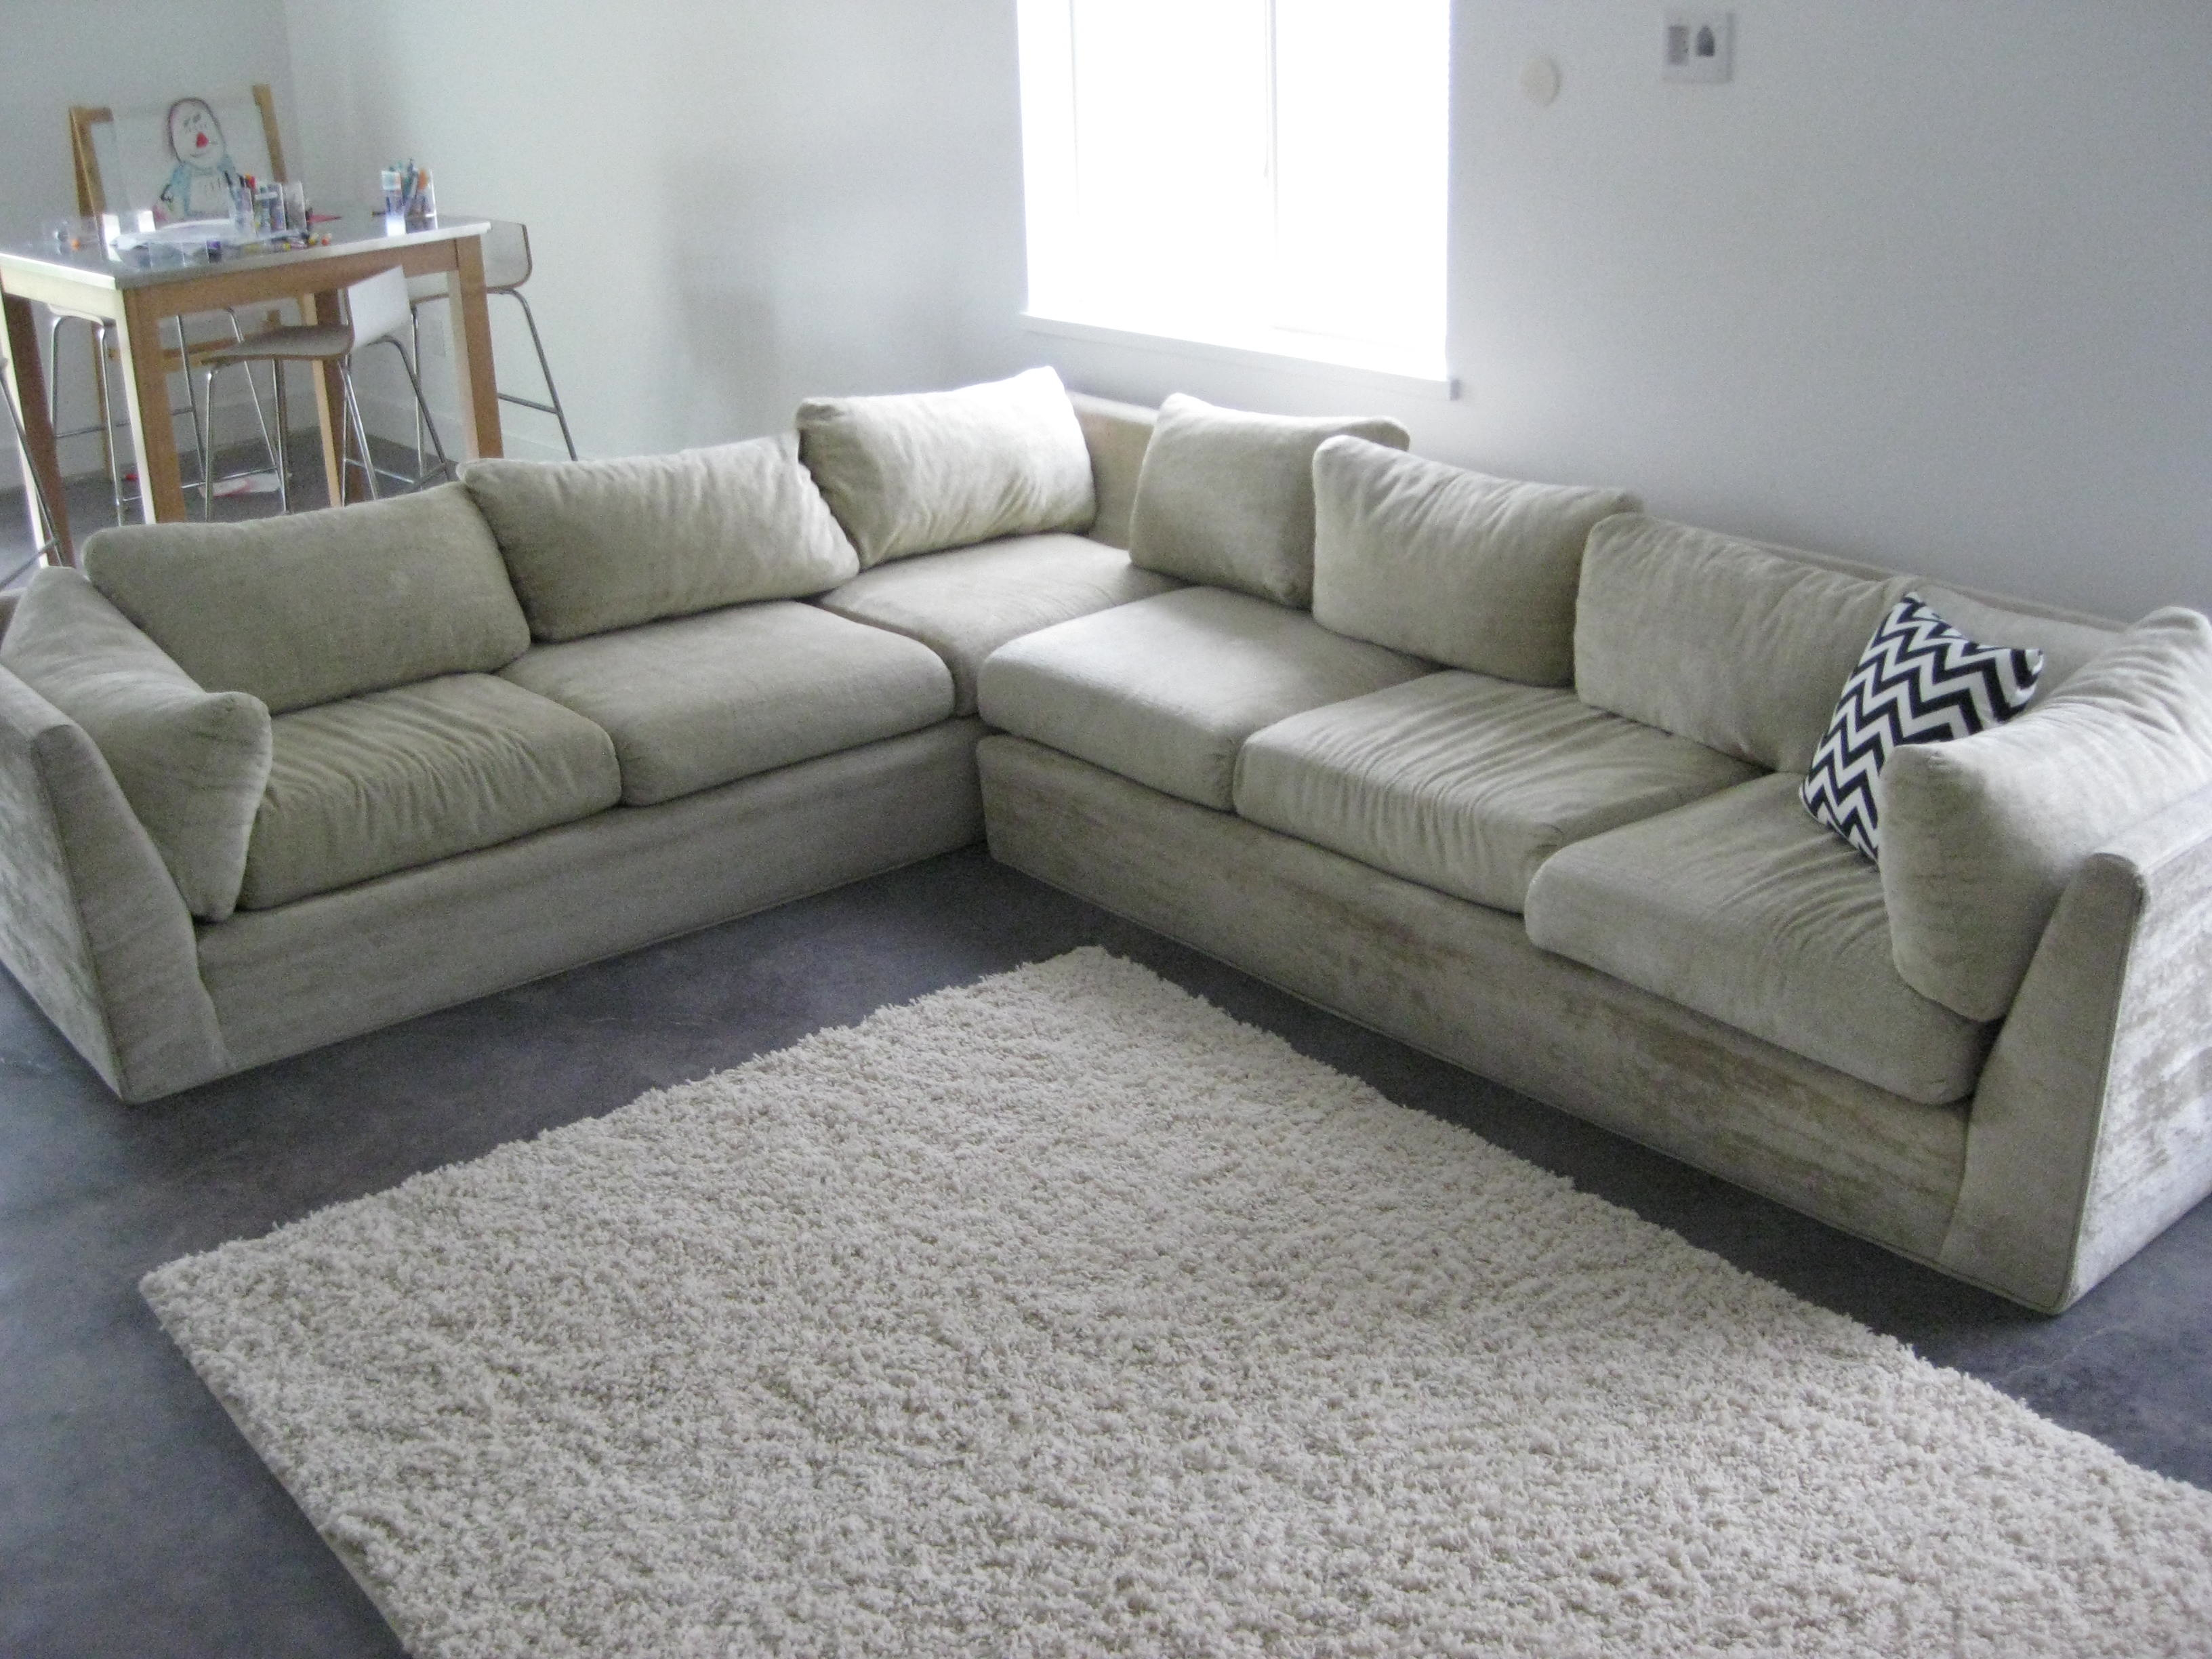 sofa reupholstering walmart gl table 40 year old sectional reupholstered beau court family